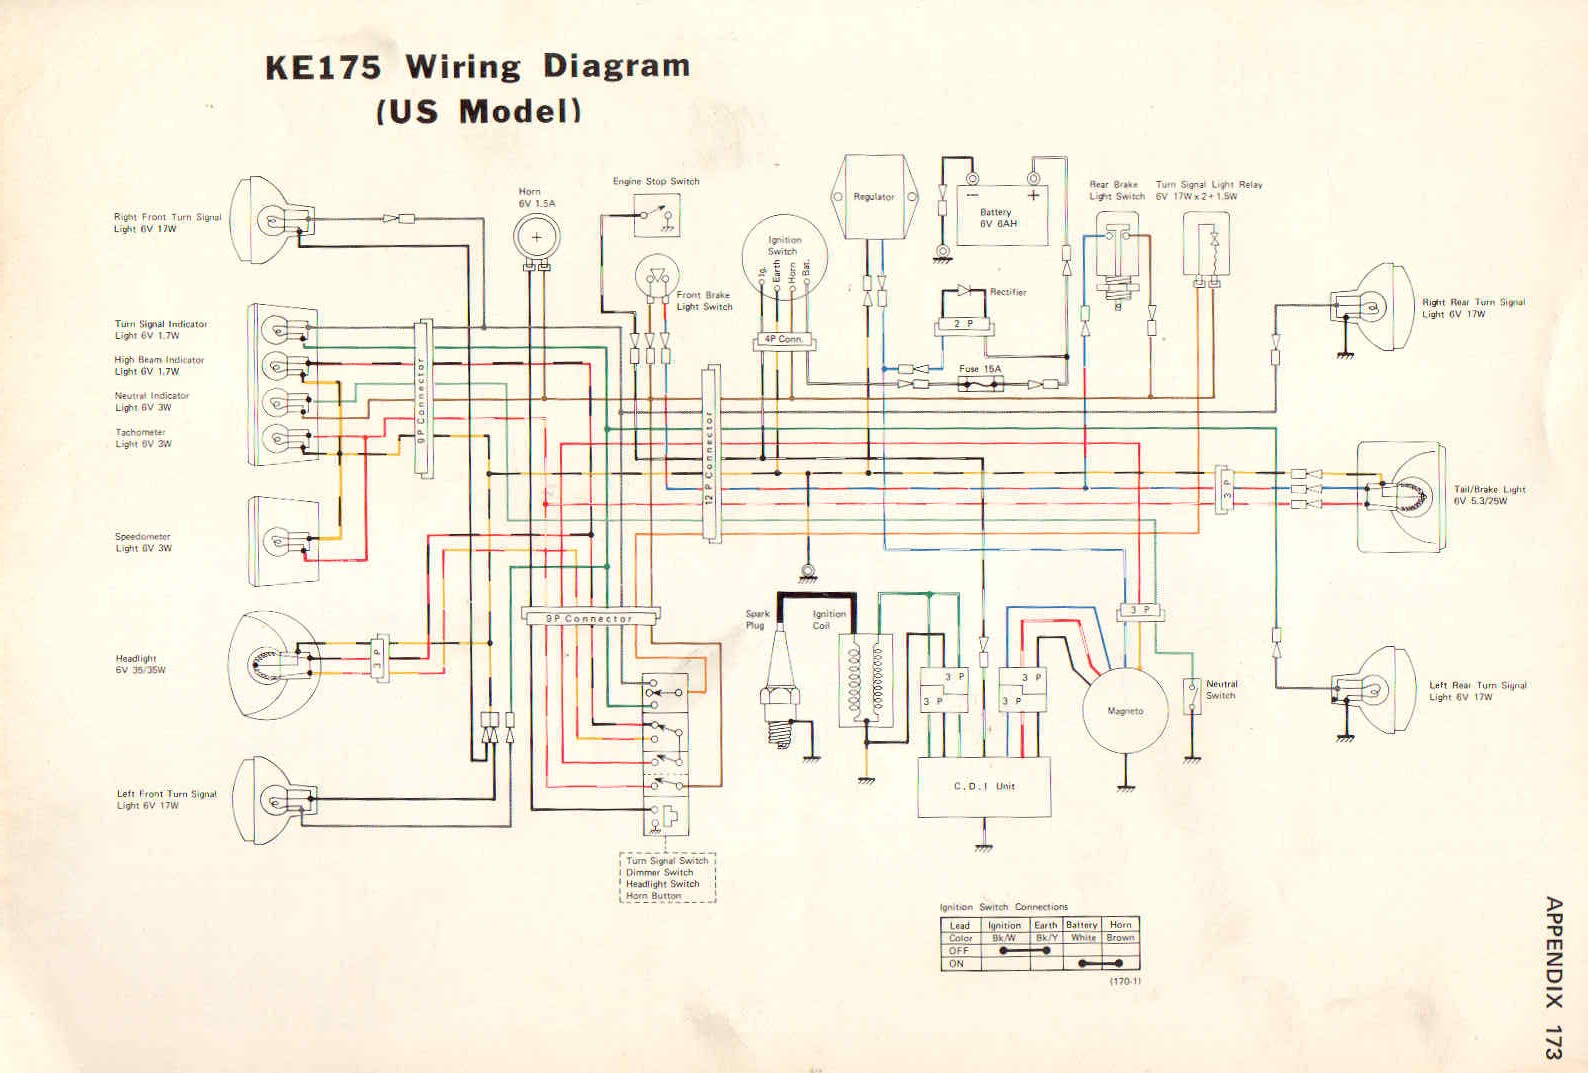 hight resolution of crf250r wiring diagram wiring diagram blogs electrical wiring diagrams crf250r wiring diagram